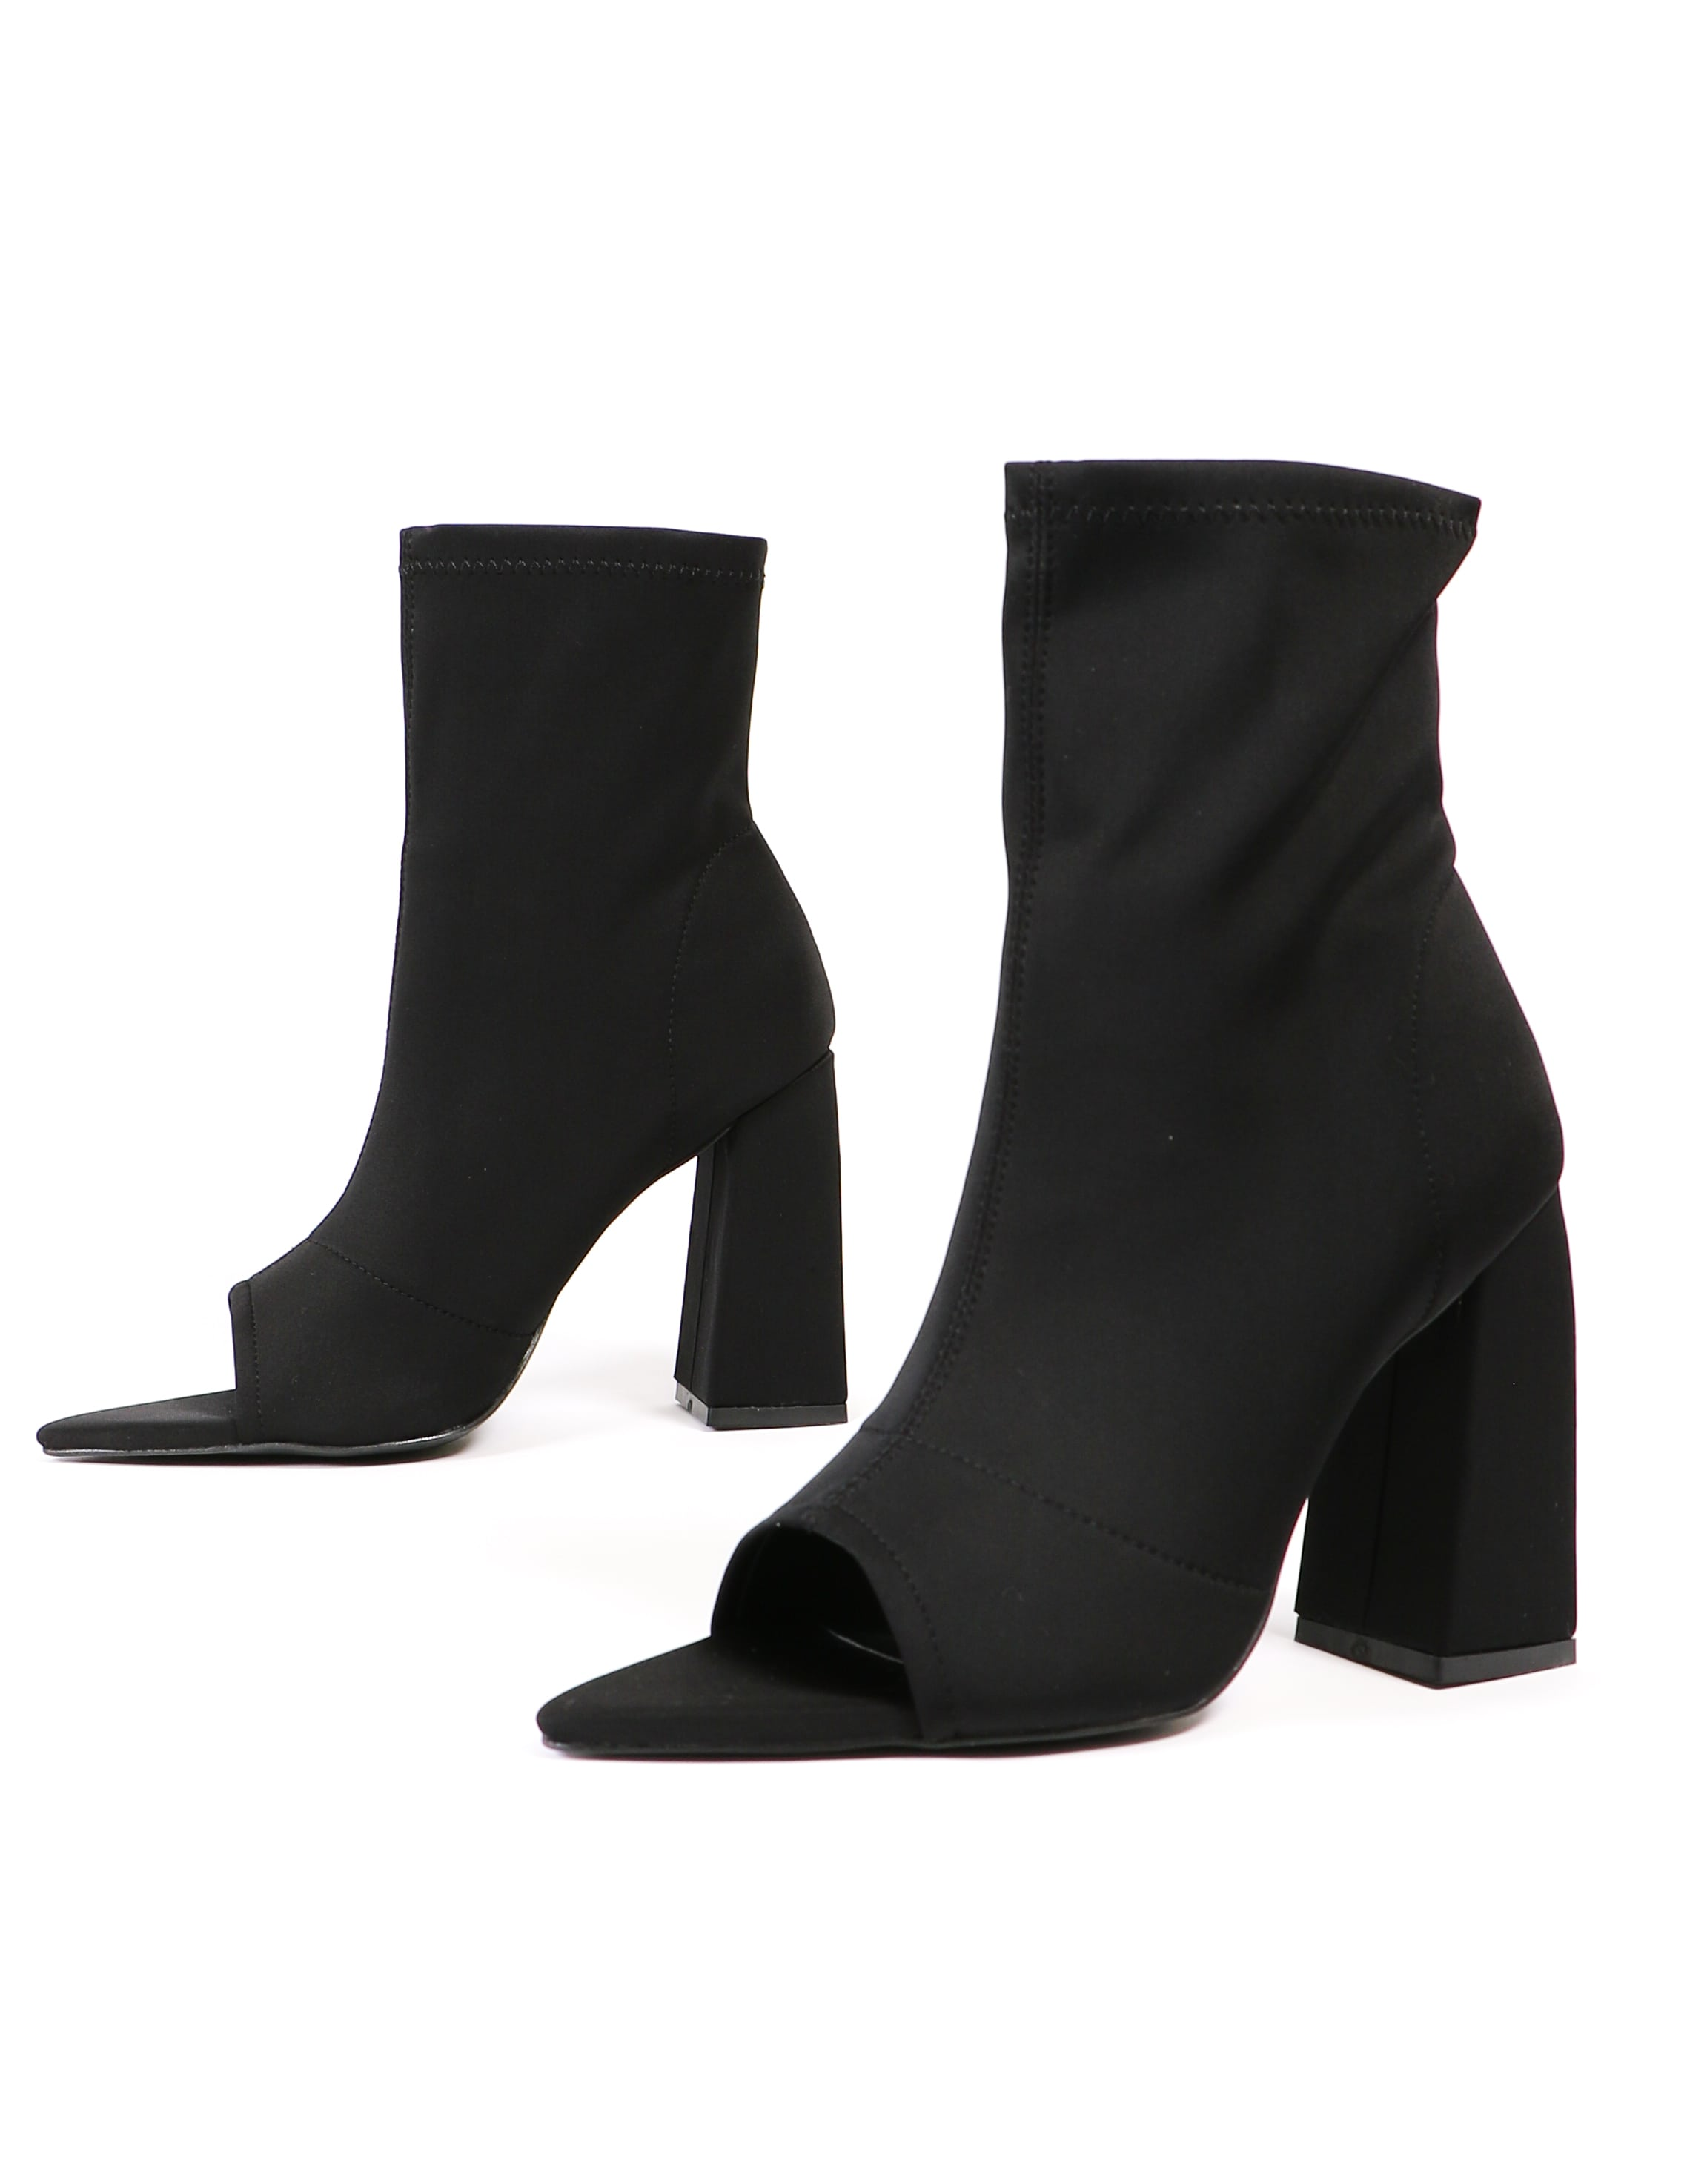 Sit tight black heeled booties on white background - elle bleu shoes